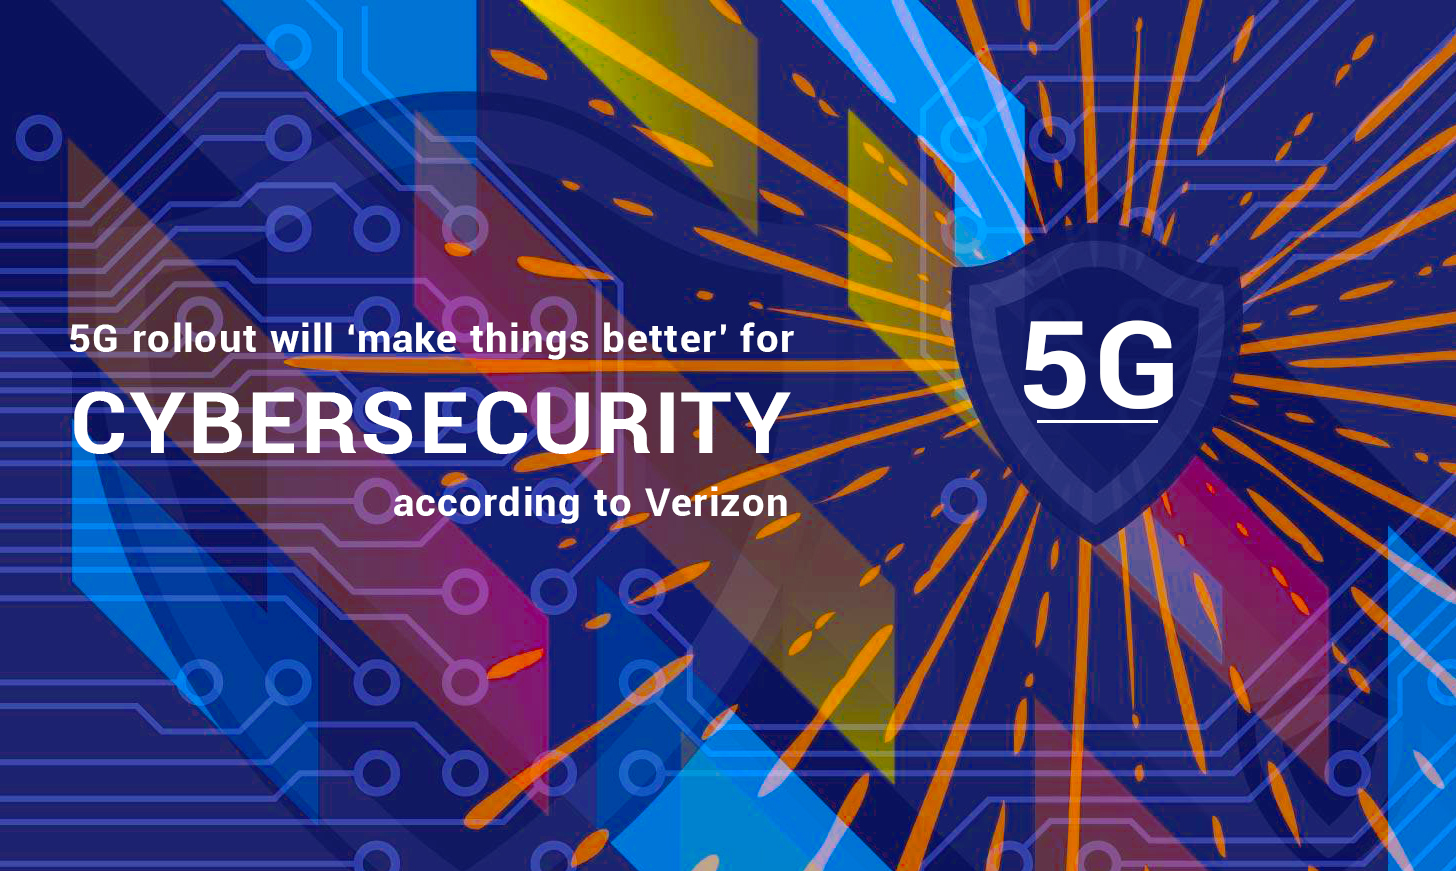 Rollout 5G will ensure the Cybersecurity – Verizon